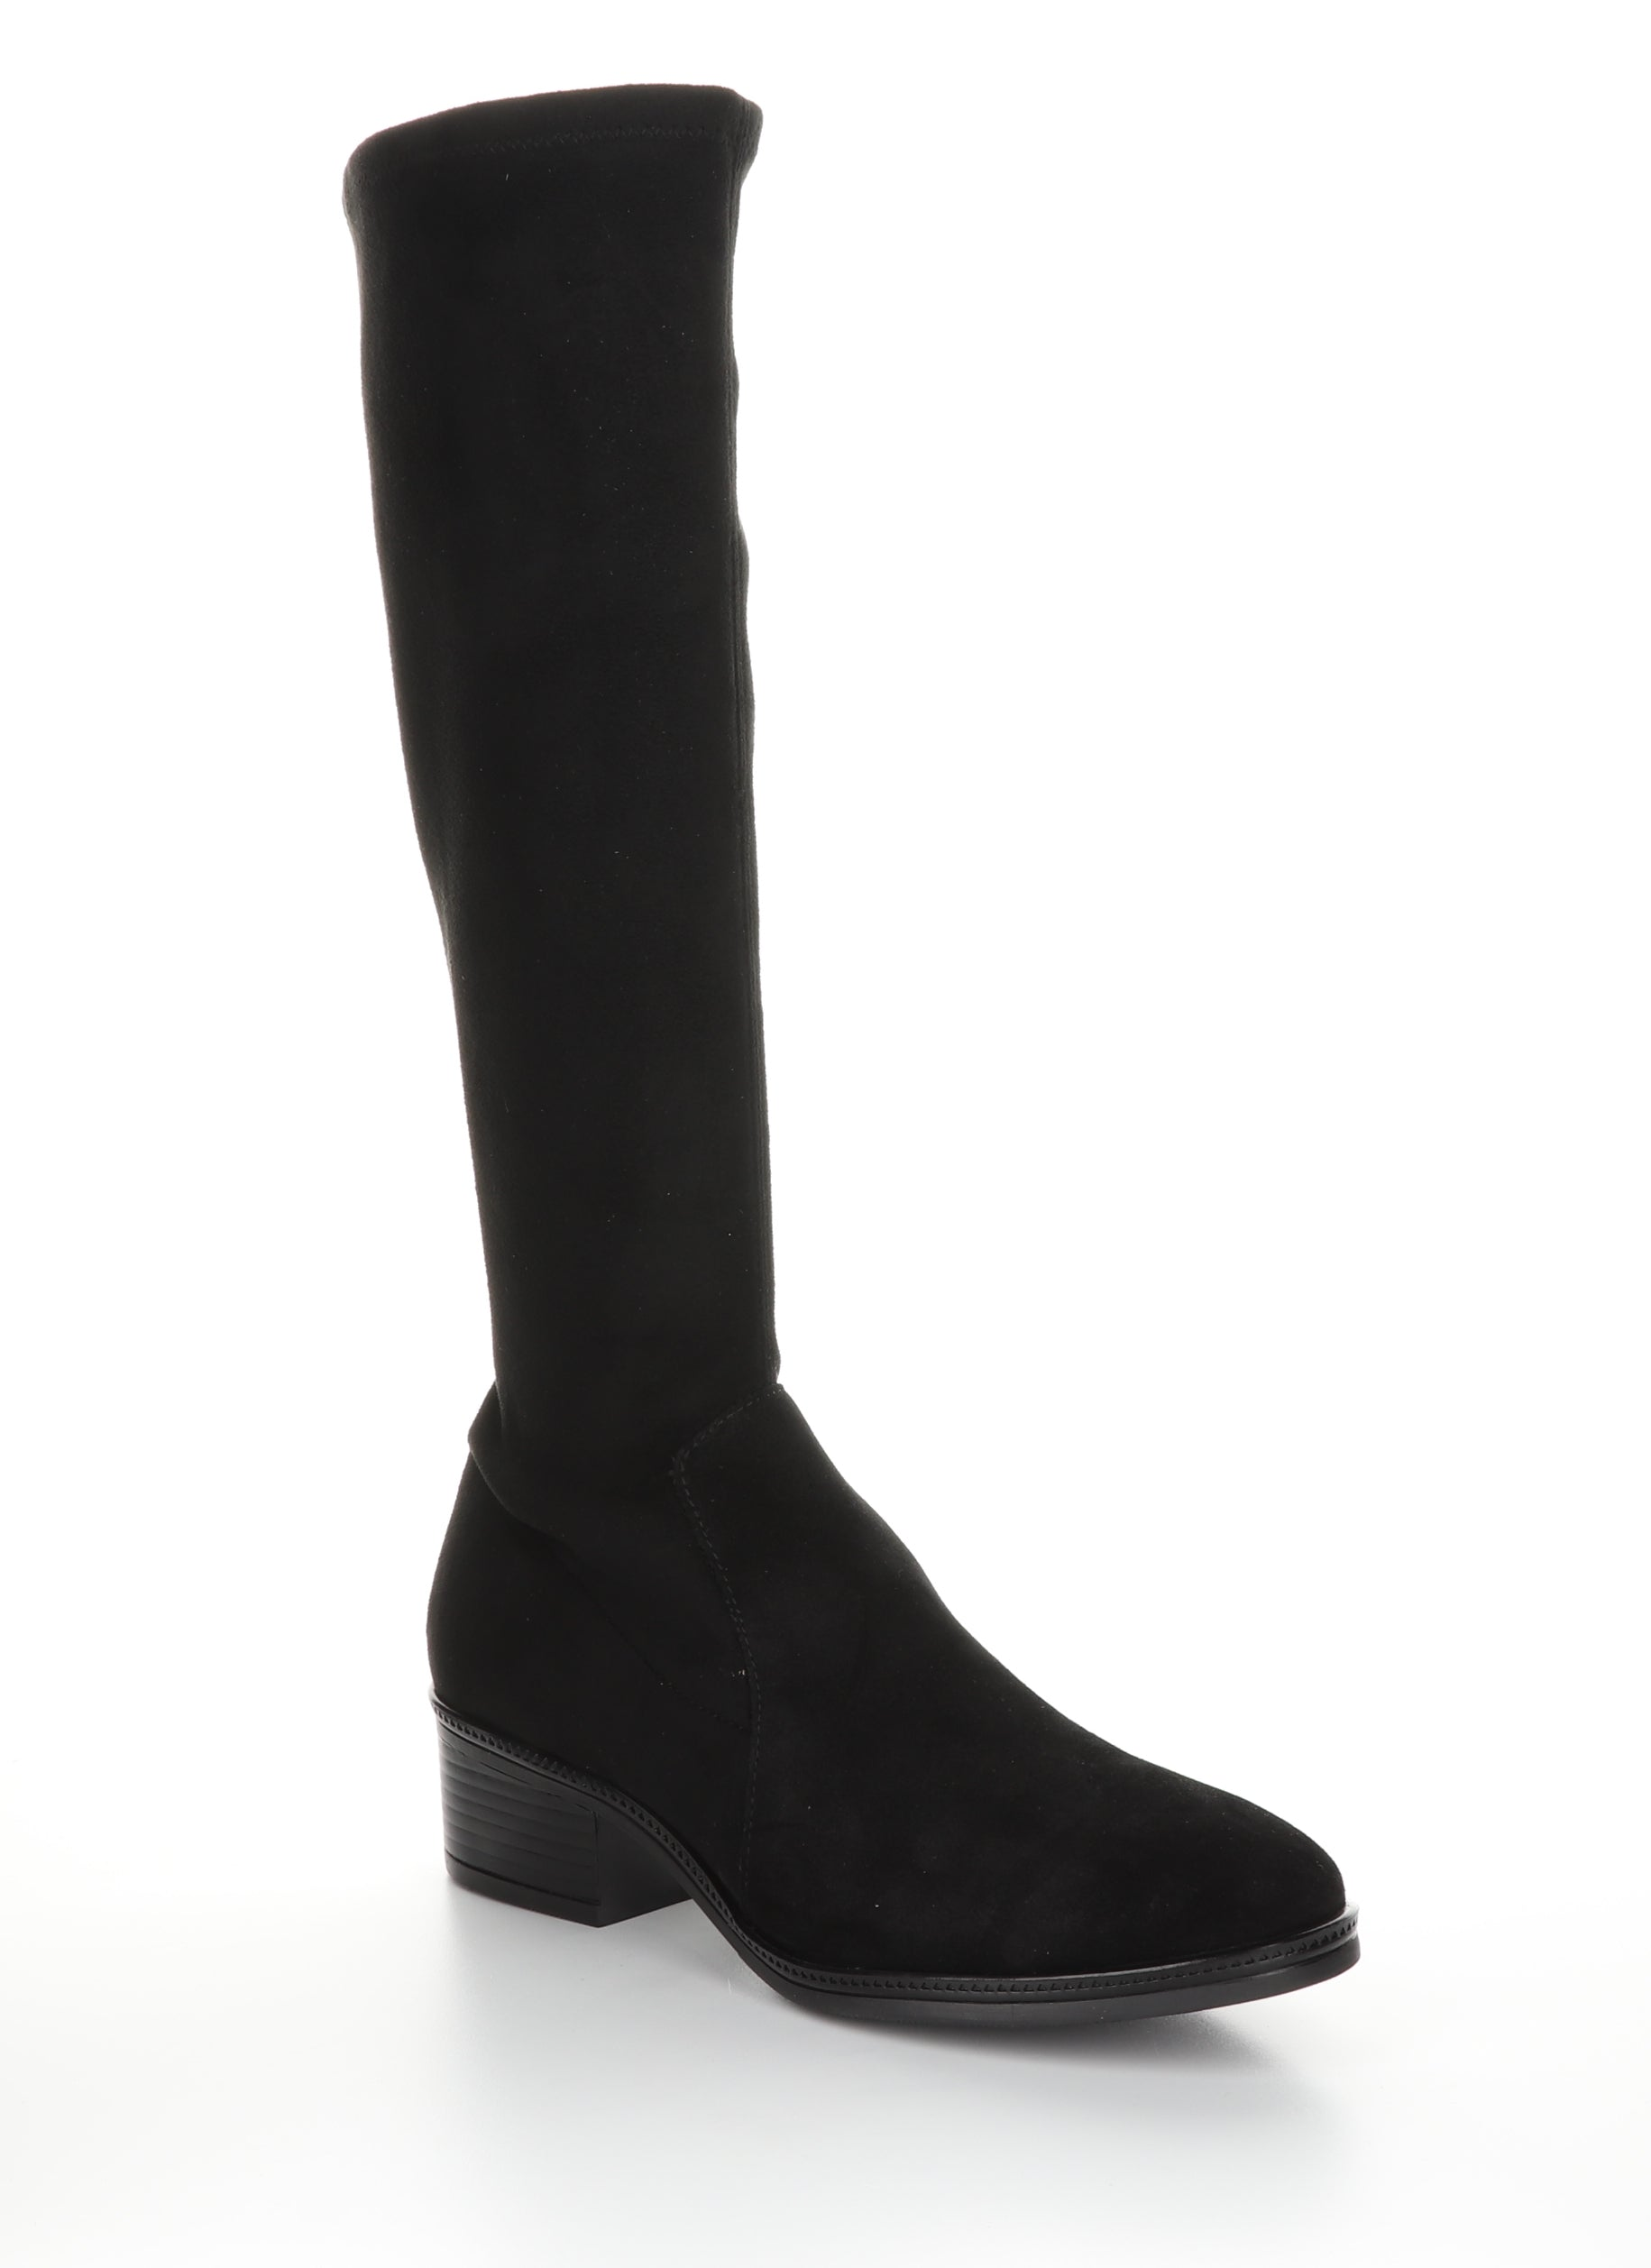 Bos and Co JAVA Knee High Boot. Fashion and Function in one boot.